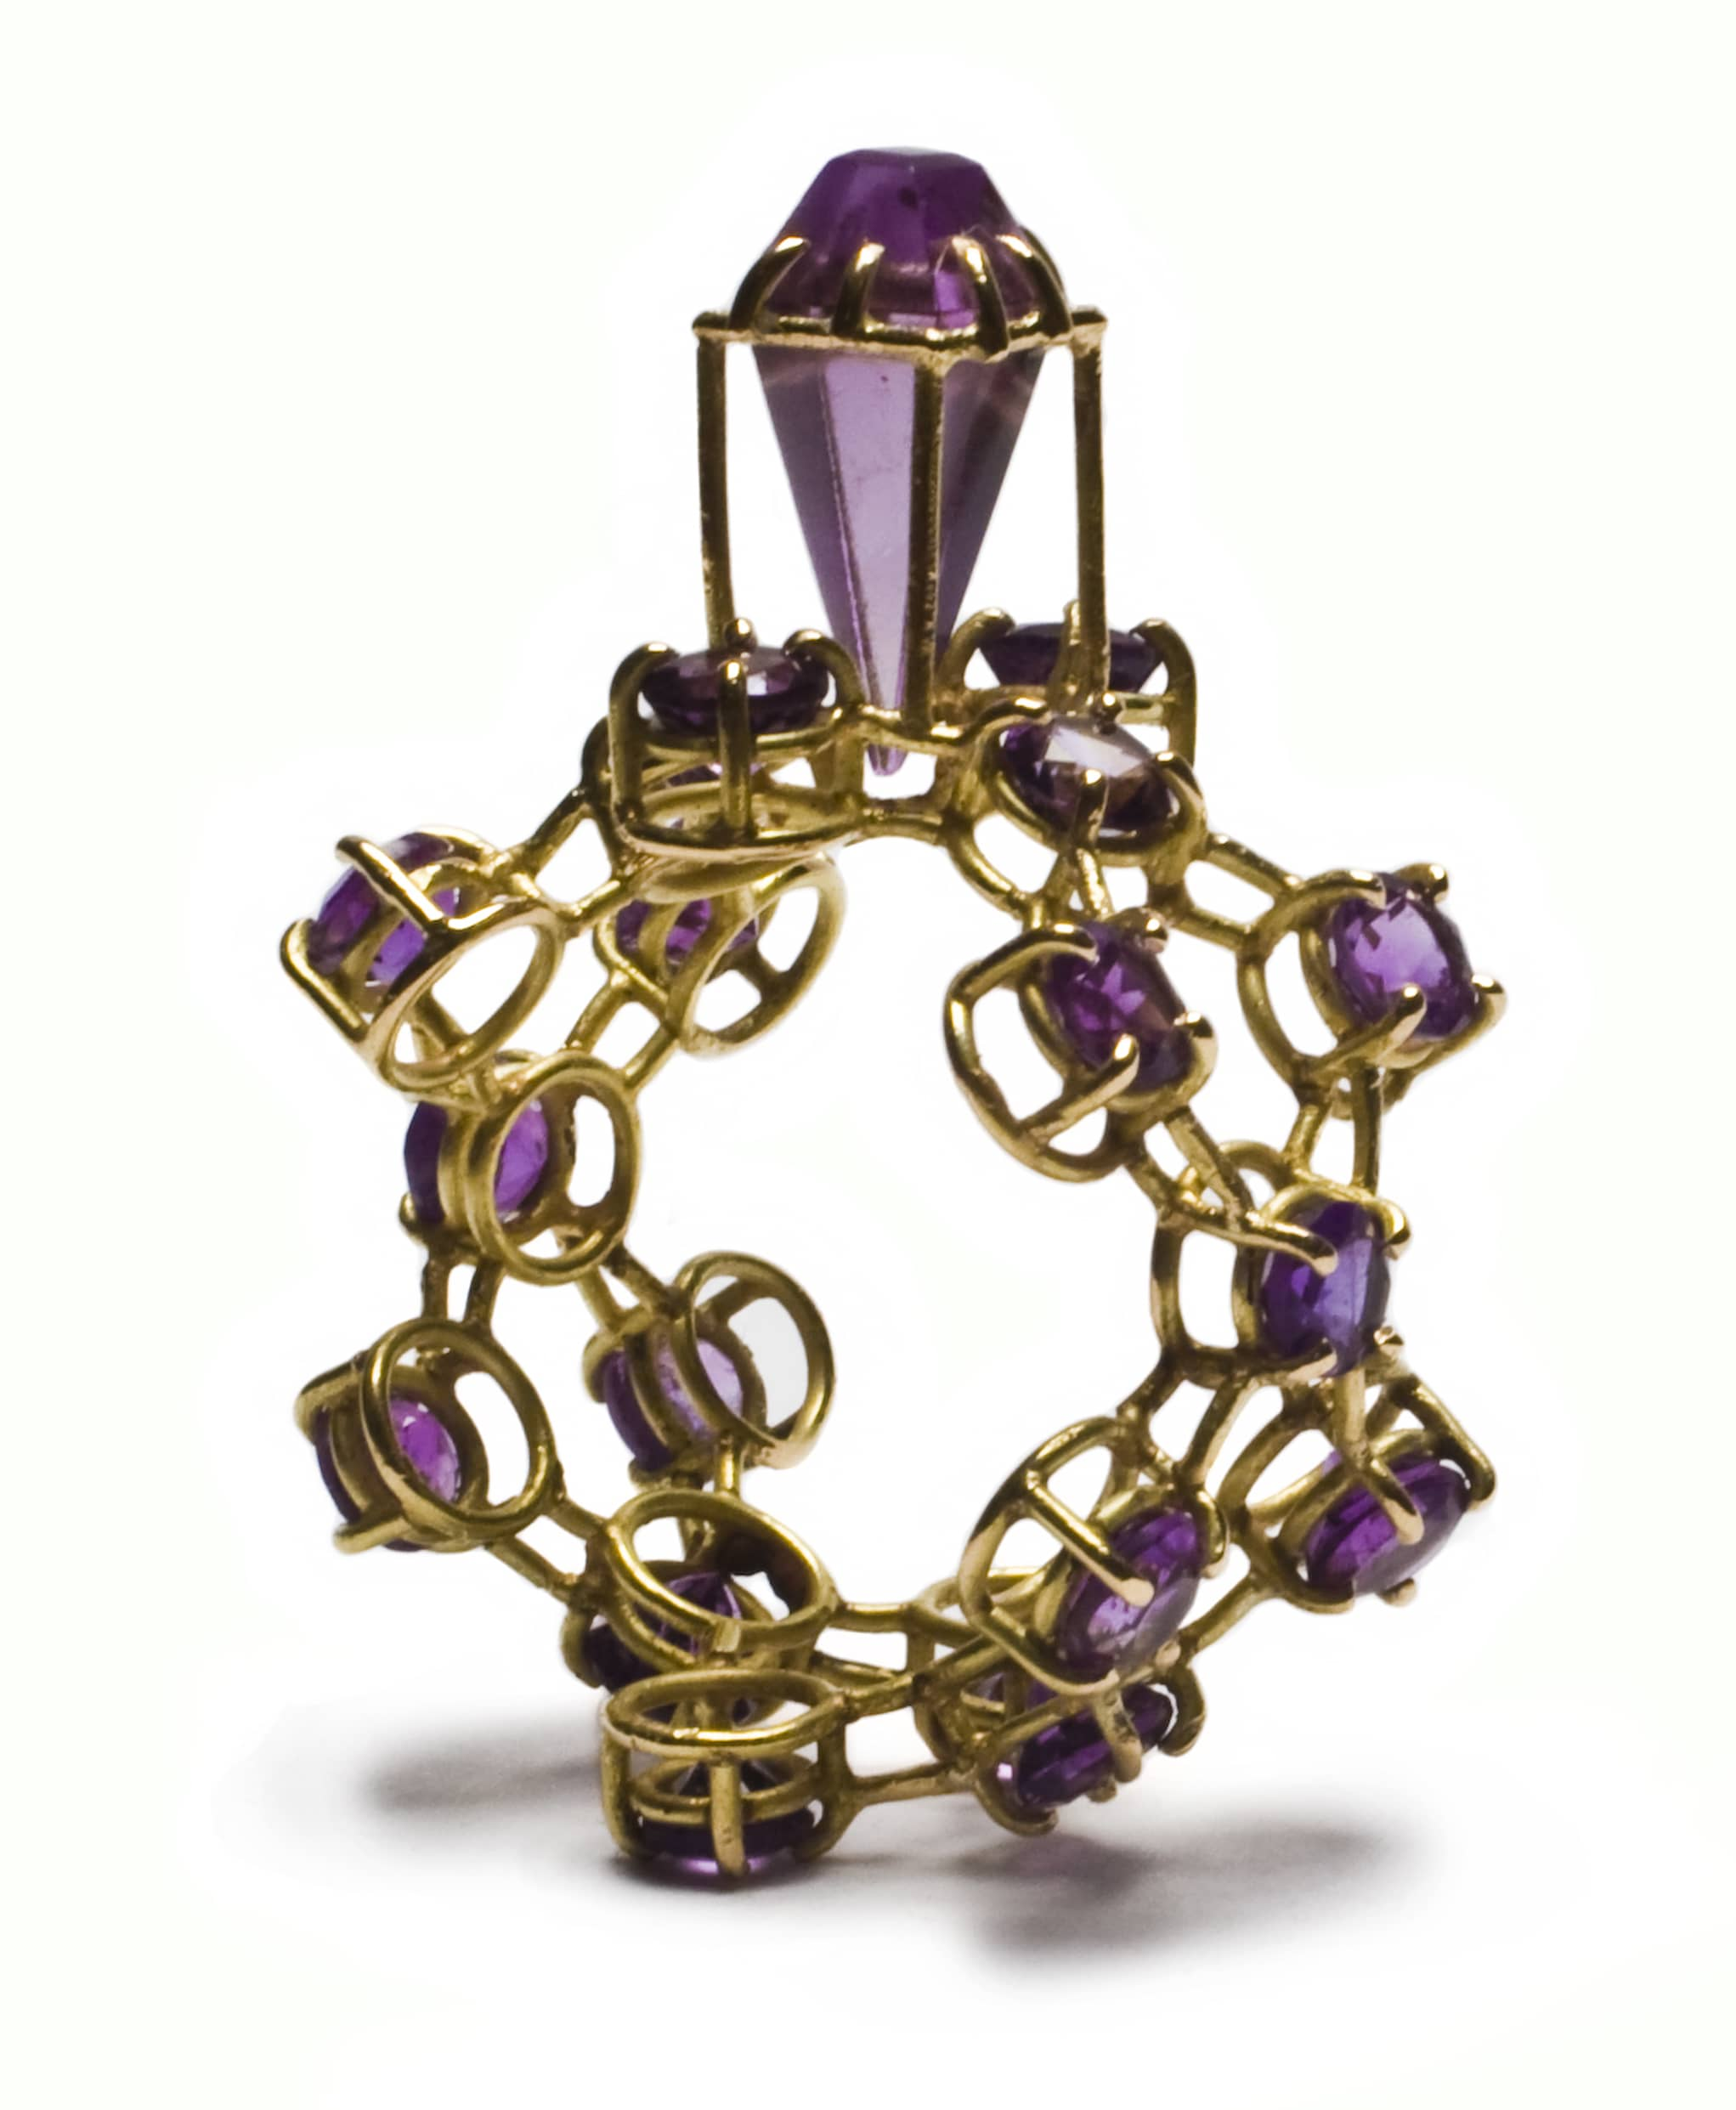 Artistar Philip Sajet, Amethyst purple ring